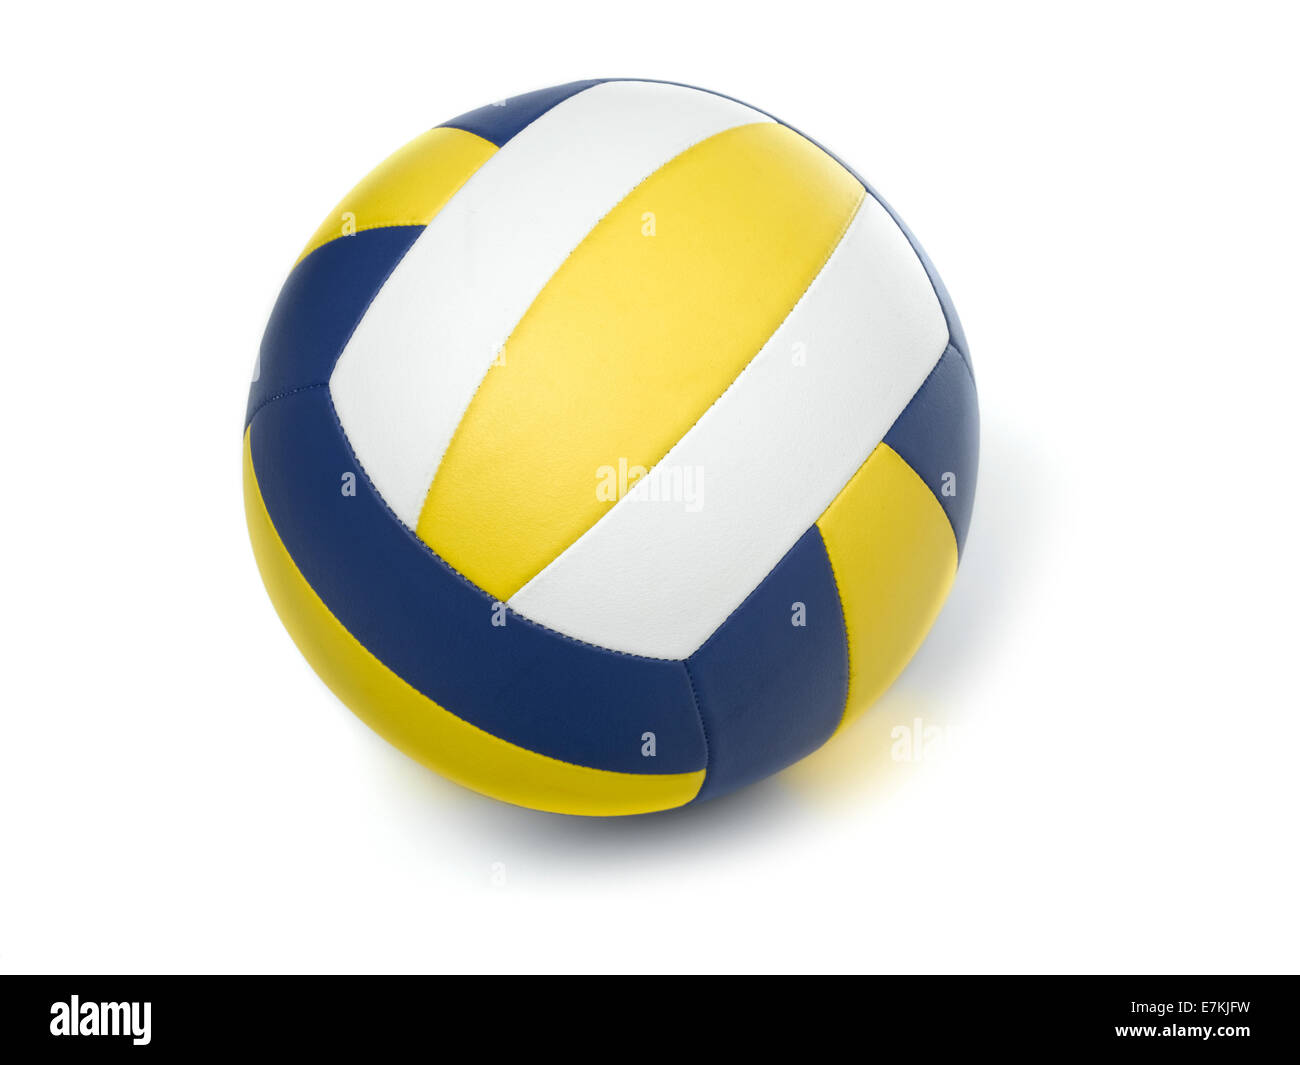 Volley-ball ball on white Photo Stock